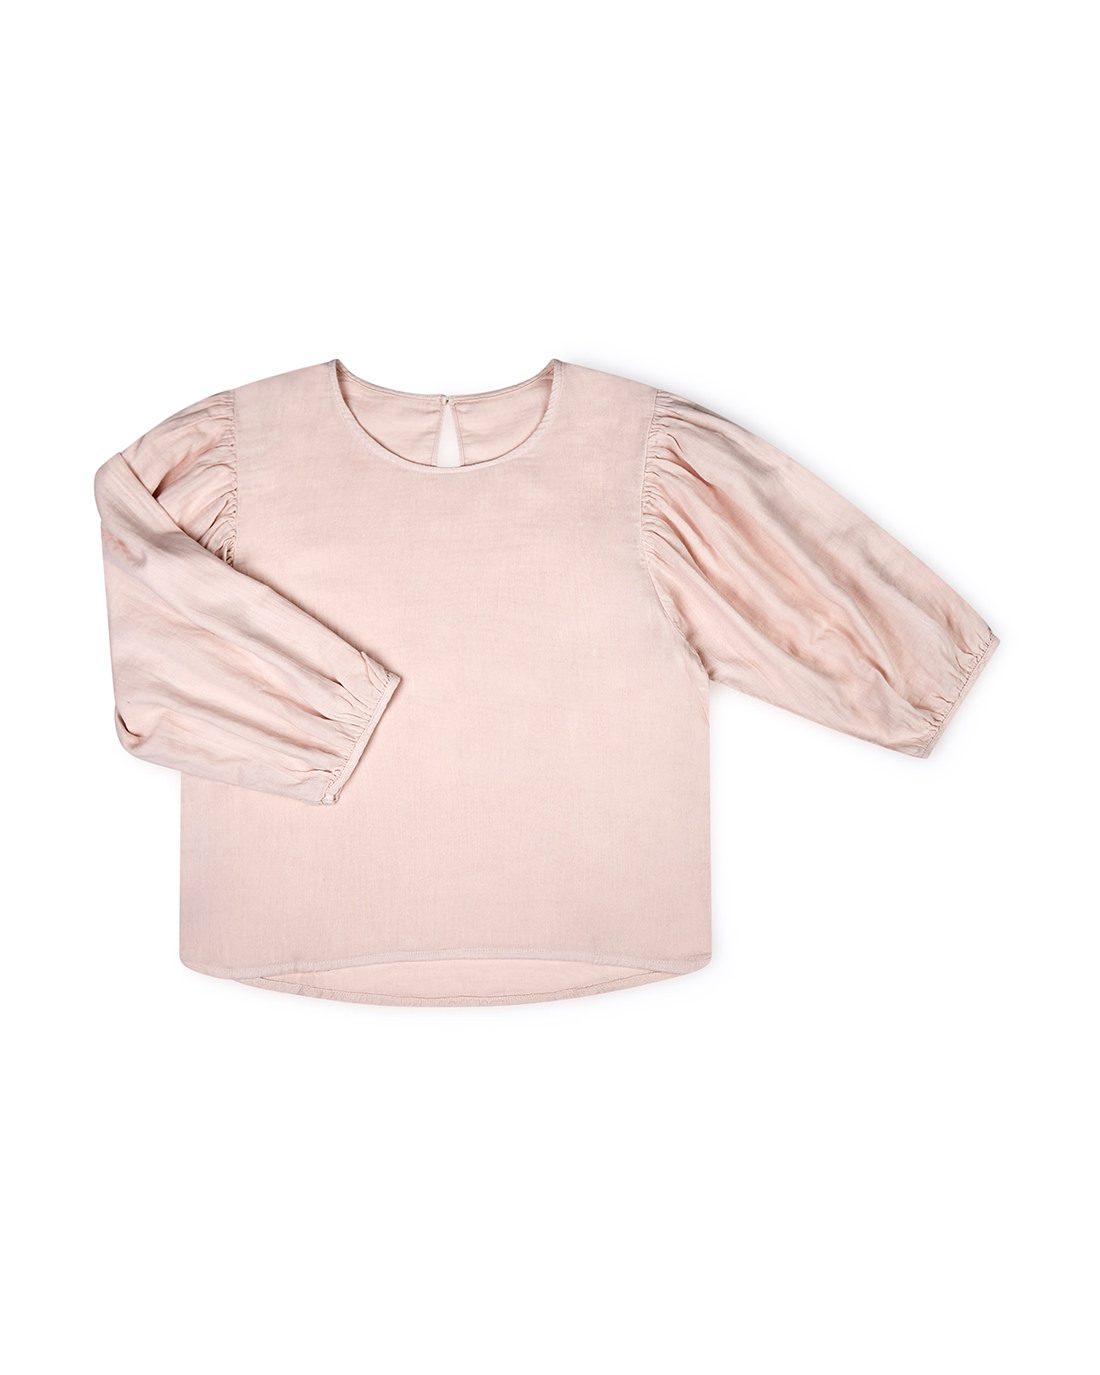 jule-blouse-blush-organic-cotton-matona-front